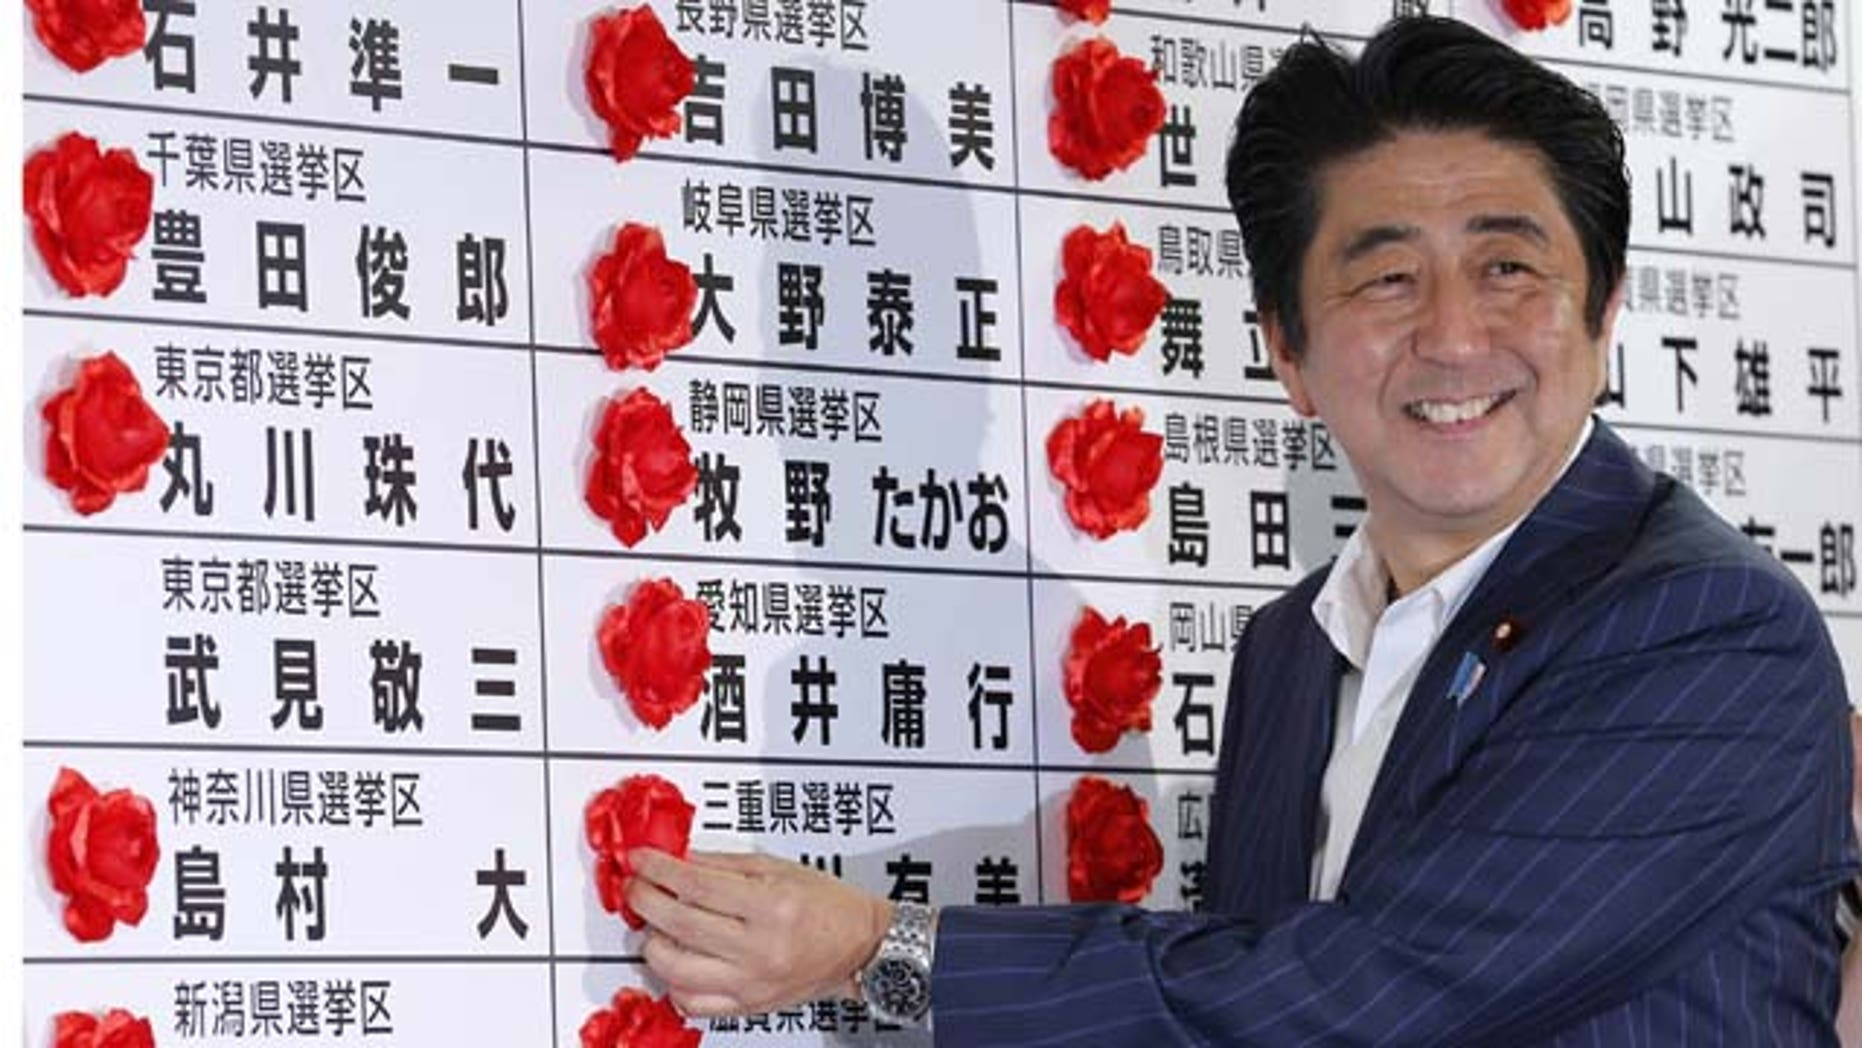 July 21, 2013: Japanese Prime Minister Shinzo Abe smiles as he places a red rosette on the name of his Liberal Democratic Party's winning candidate during ballot counting for the upper house elections at the party headquarters in Tokyo (AP Photo)